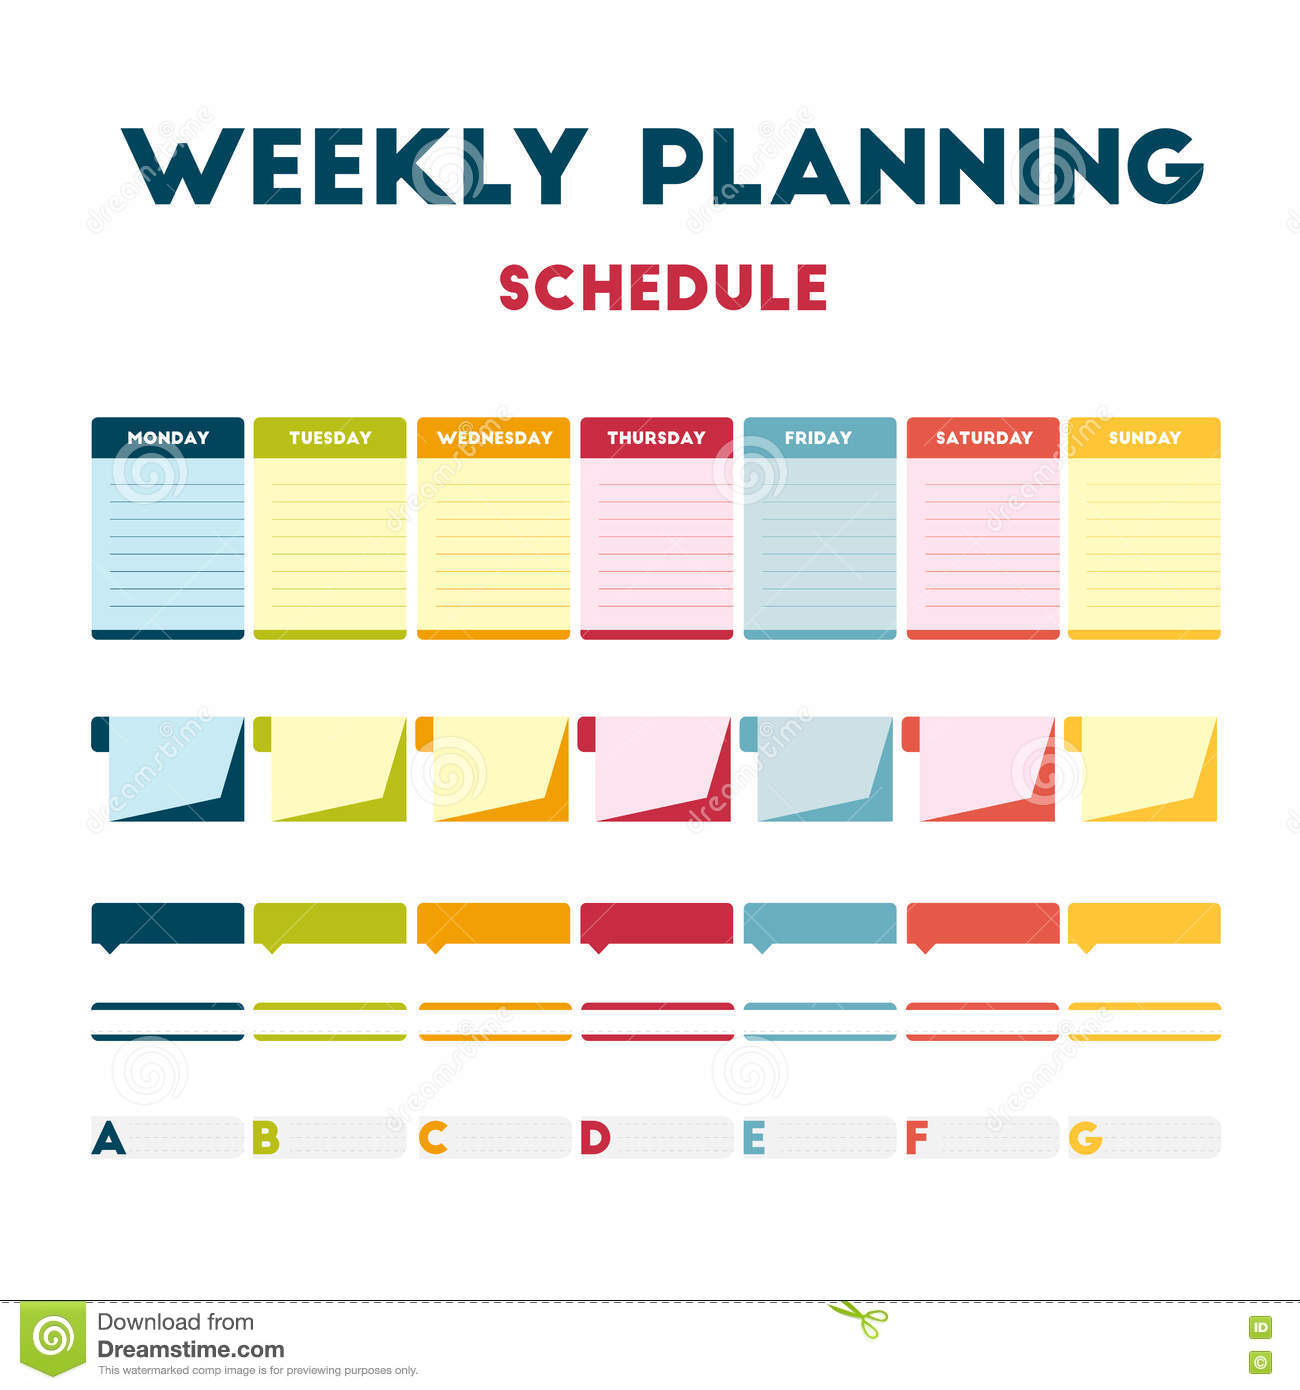 Weekly plan schedule for Time design planner